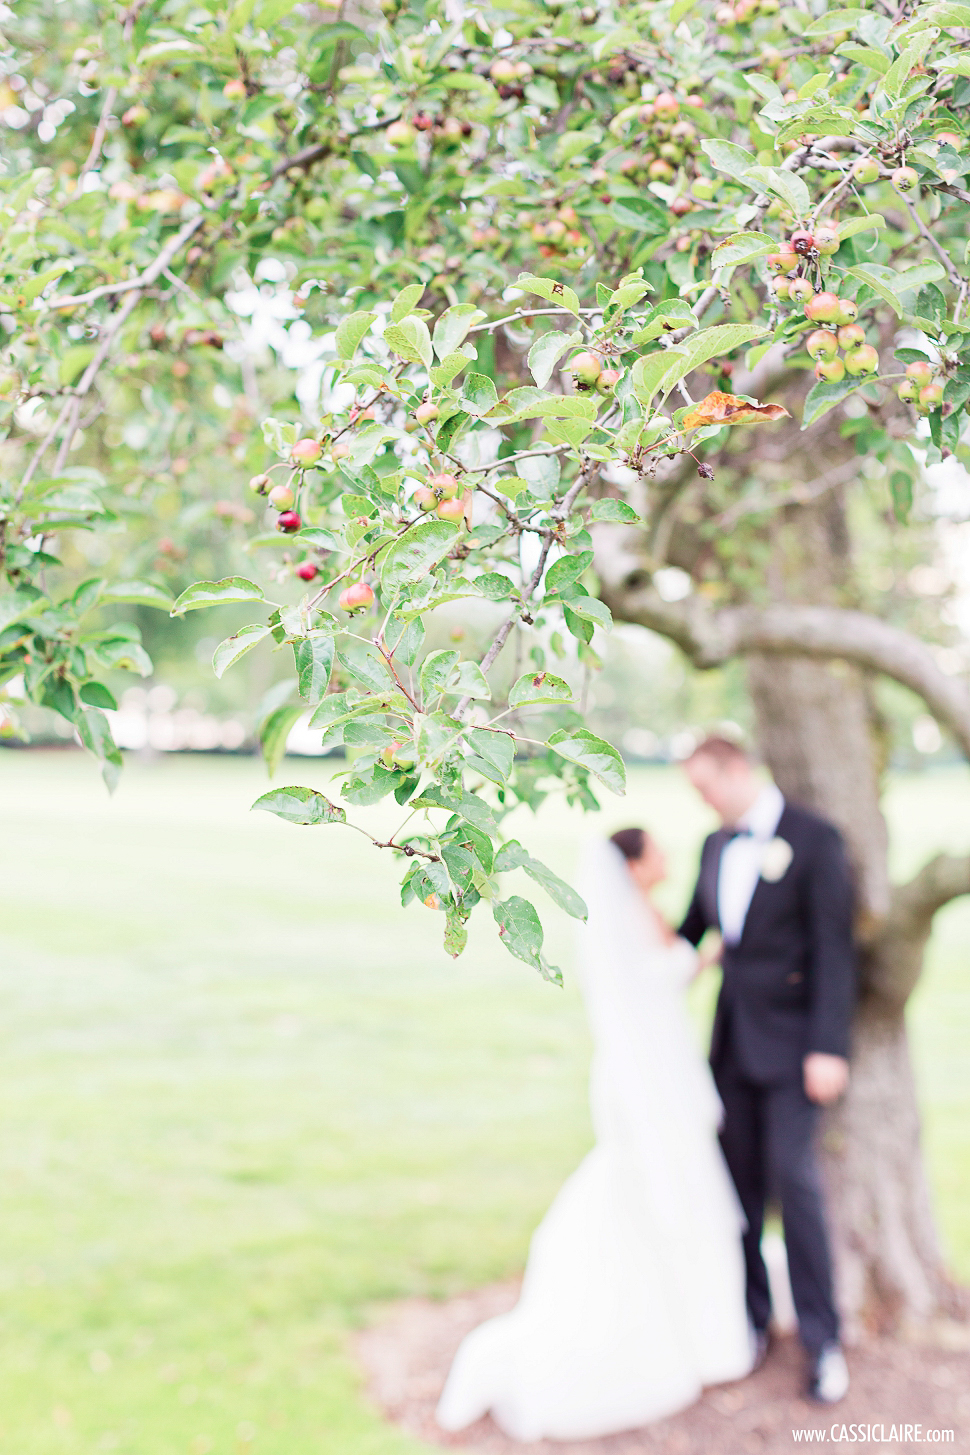 Cassi-Claire_Best-of-2014-Weddings_005_____2editgreens.jpg